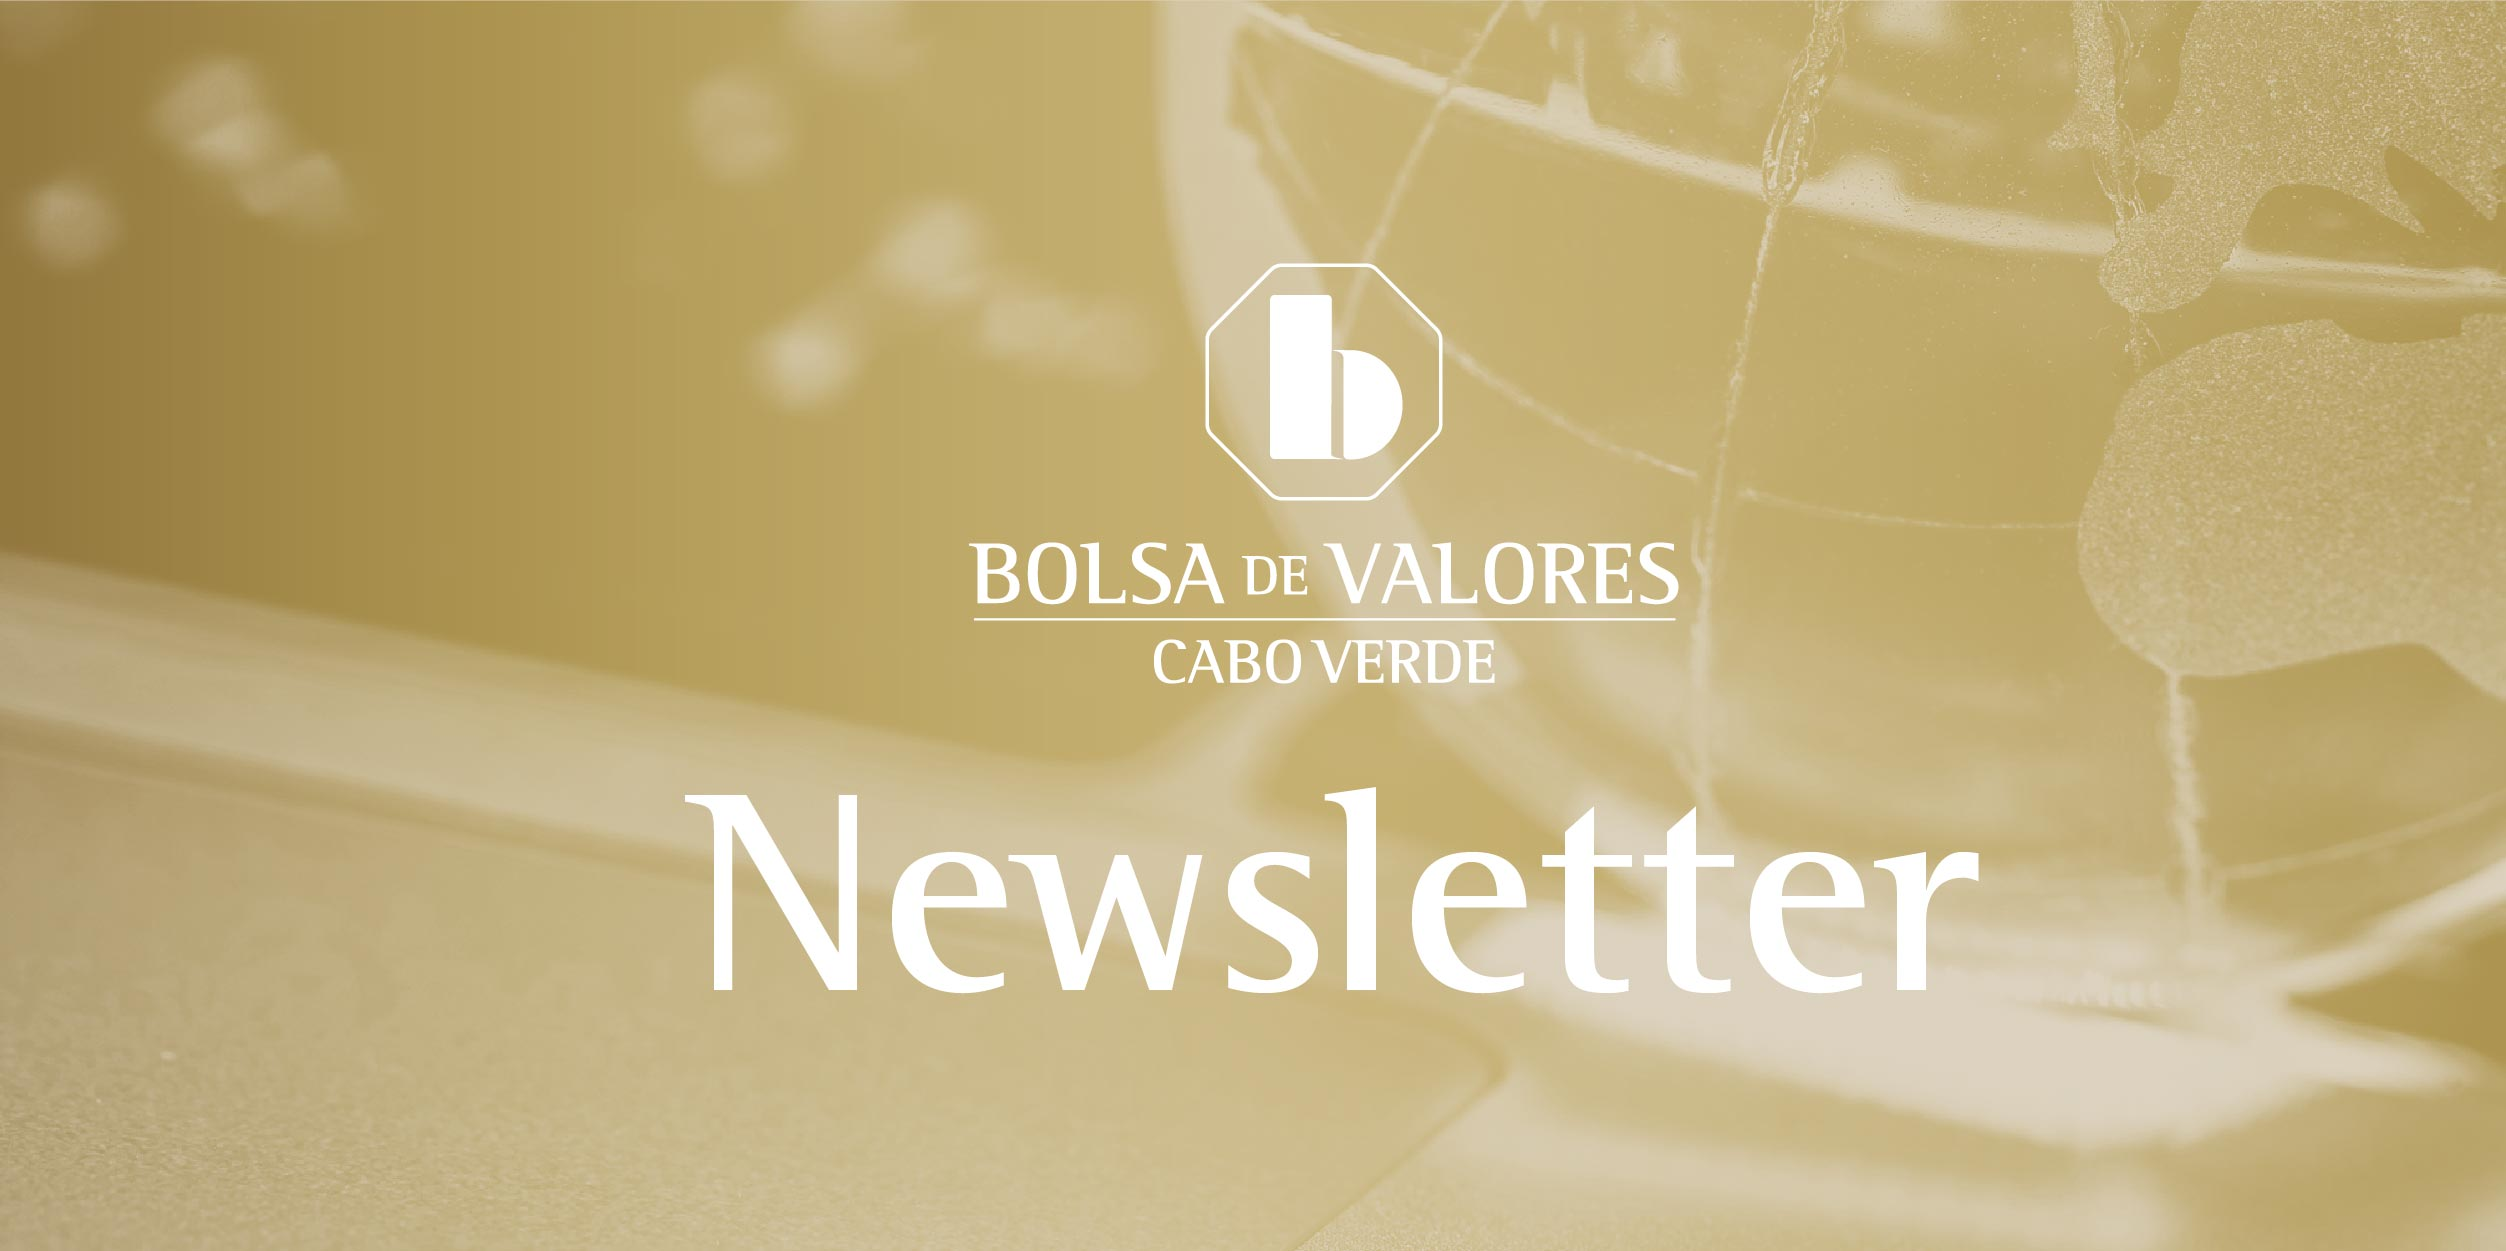 NEWSLETTER - Operações do Mercado de Bolsa referente ao ano 2019